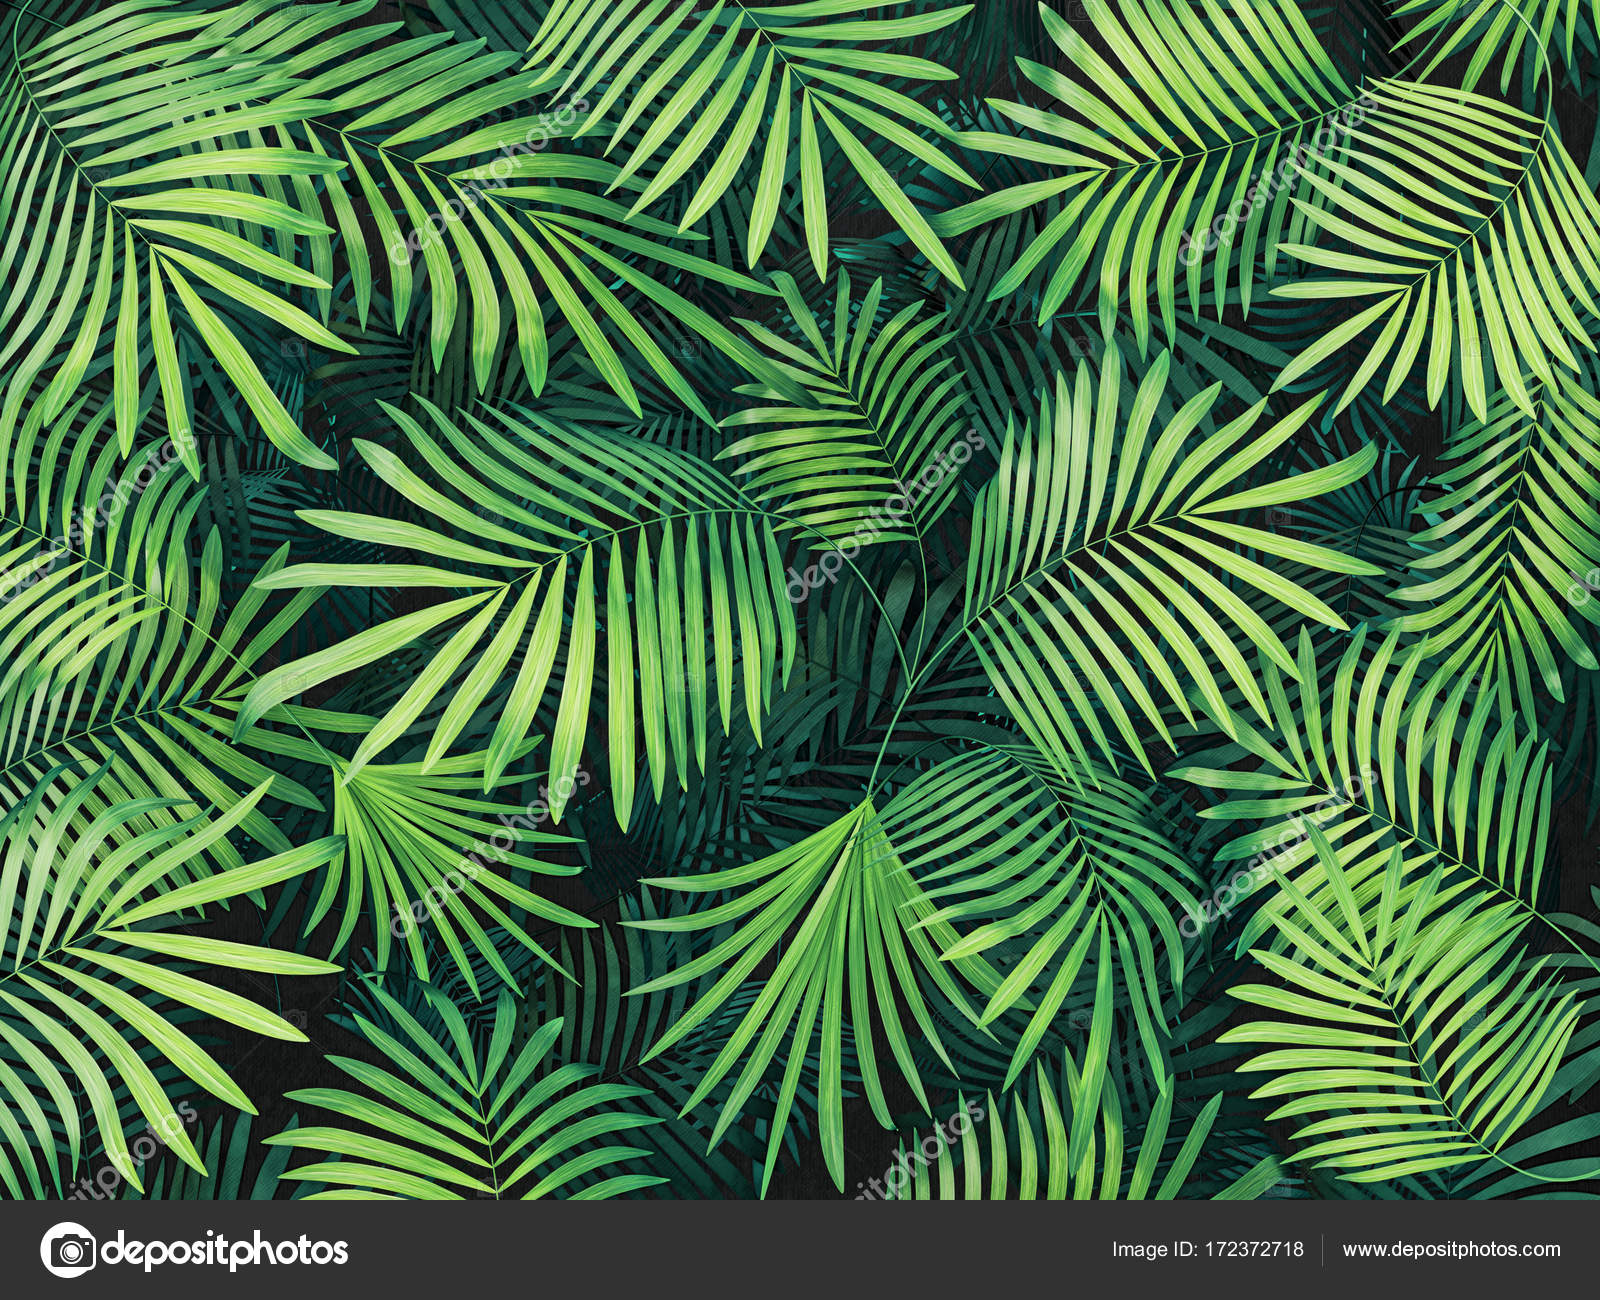 Áˆ Tropical Leaves Wallpaper Stock Photography Royalty Free Tropical Leaves Photos Download On Depositphotos The illustration is available for download in high resolution quality up to 4134x4134 and in eps file format. https depositphotos com 172372718 stock photo tropical leaves background html